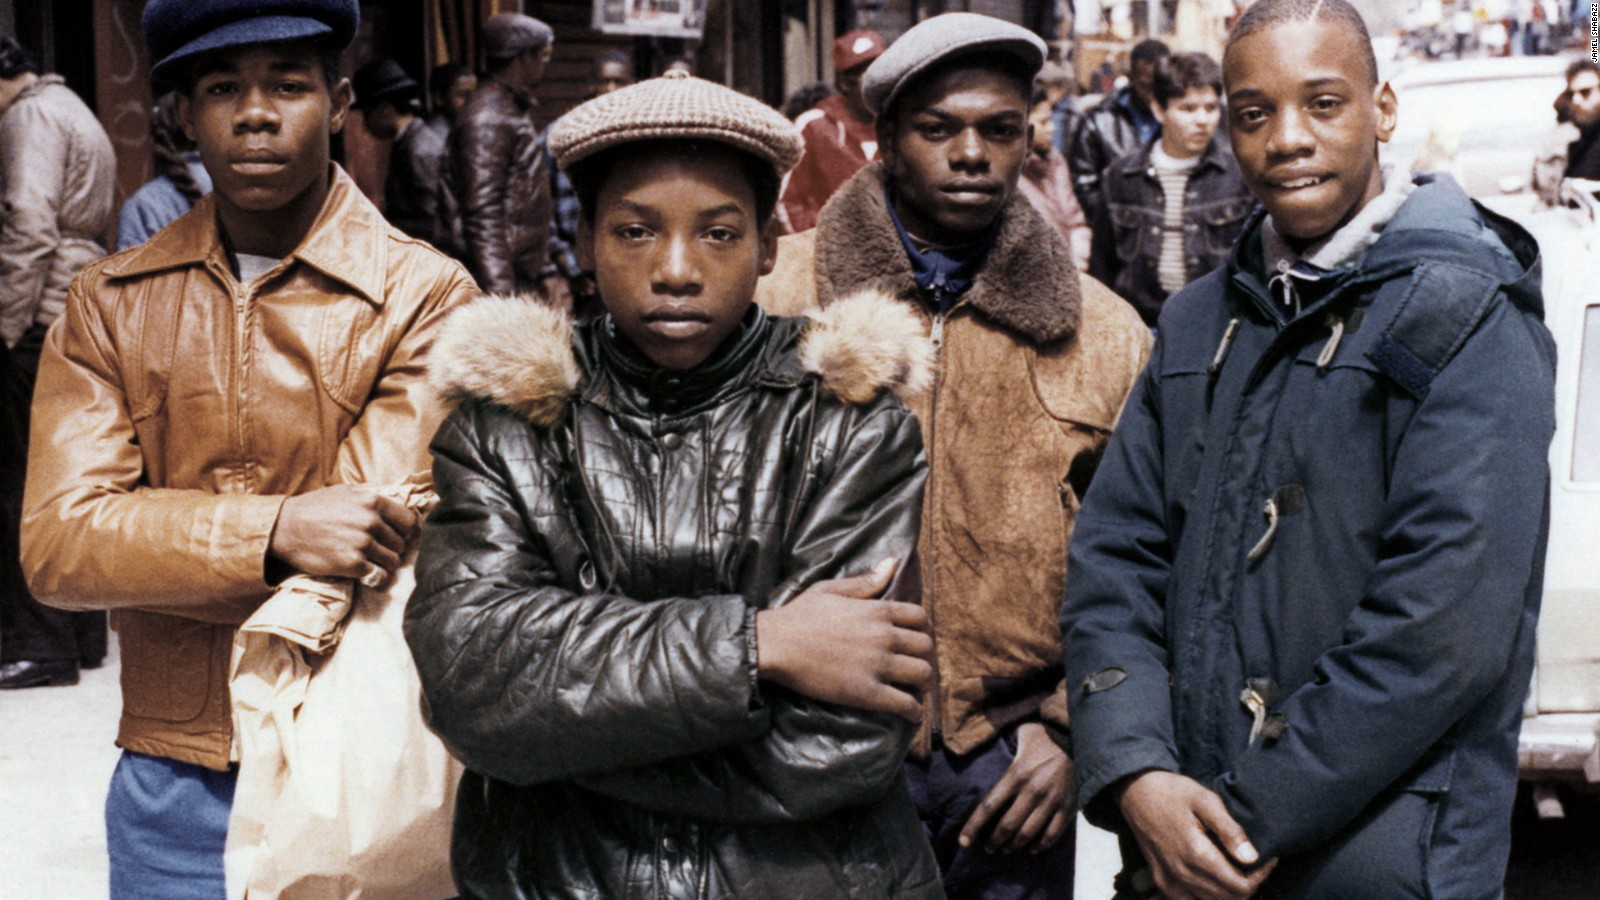 Urban Wear and Hip Hop. Two that always will co-exist! | by Eric Reese | Noteworthy - The Journal Blog